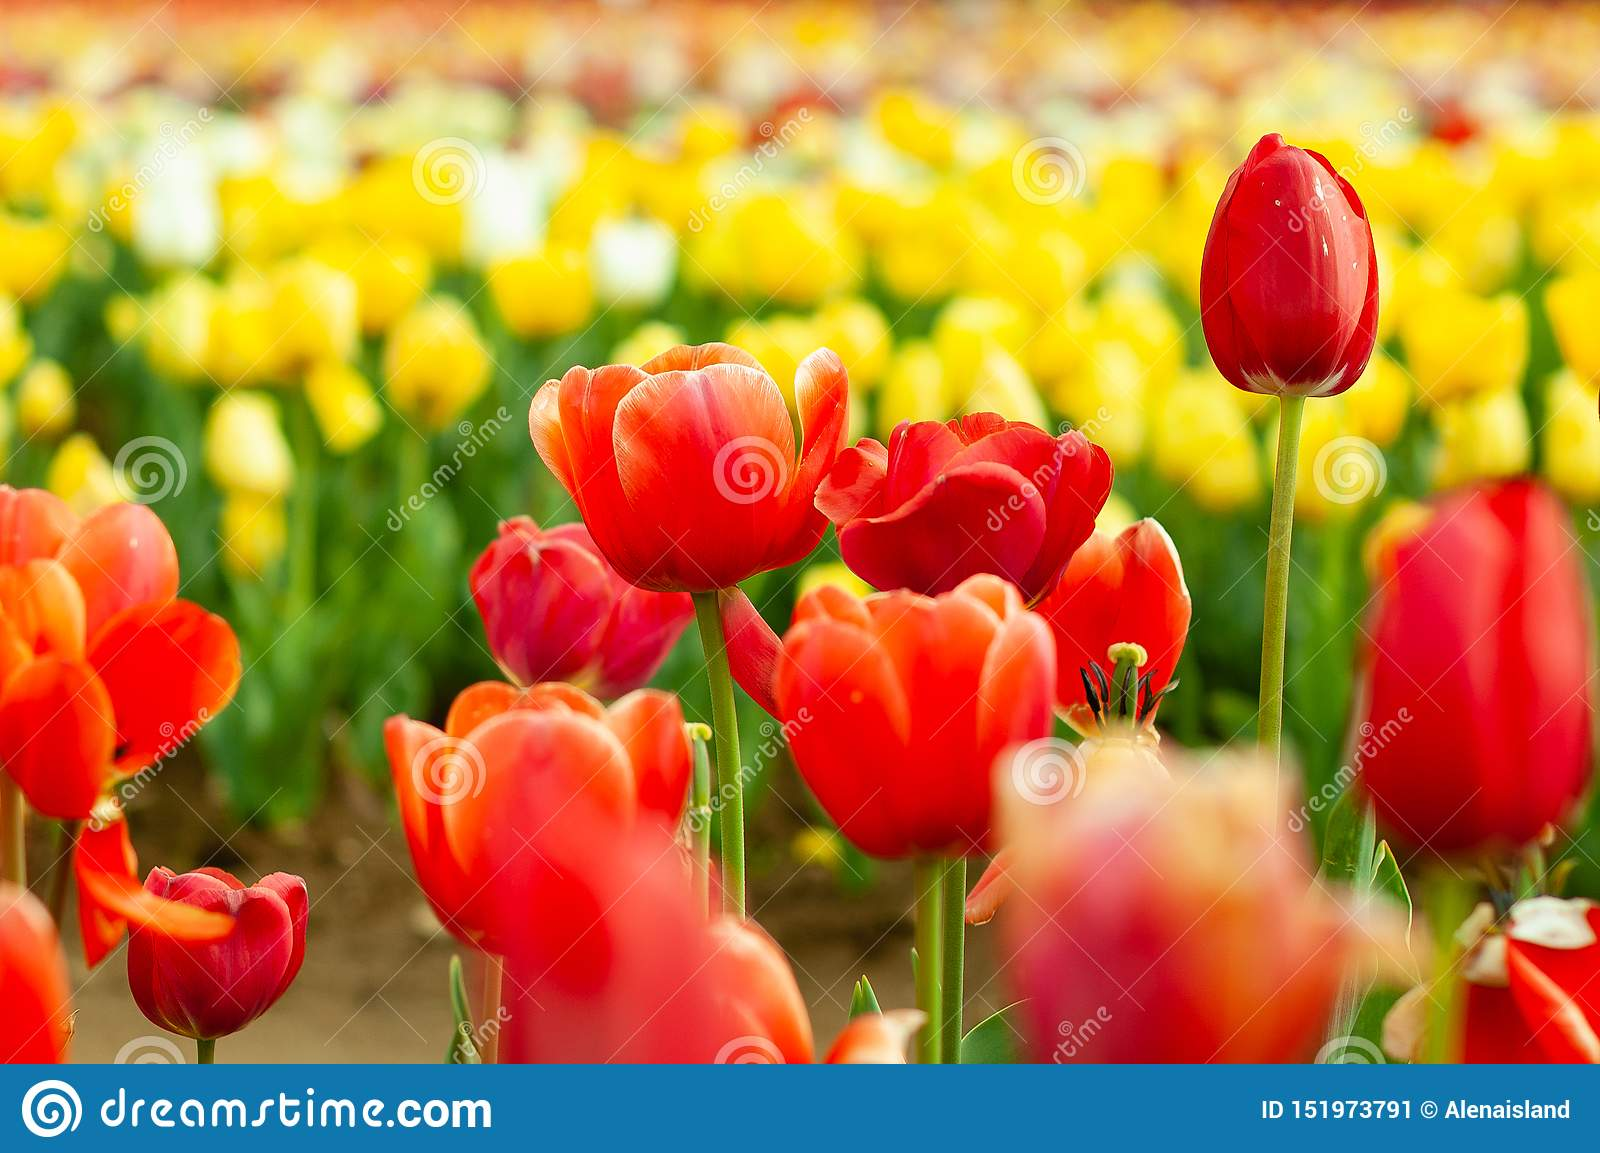 Blooming tulip fields in Netherlands, flower with blurrred colorful tulips as background. Selective focus,tulip close up